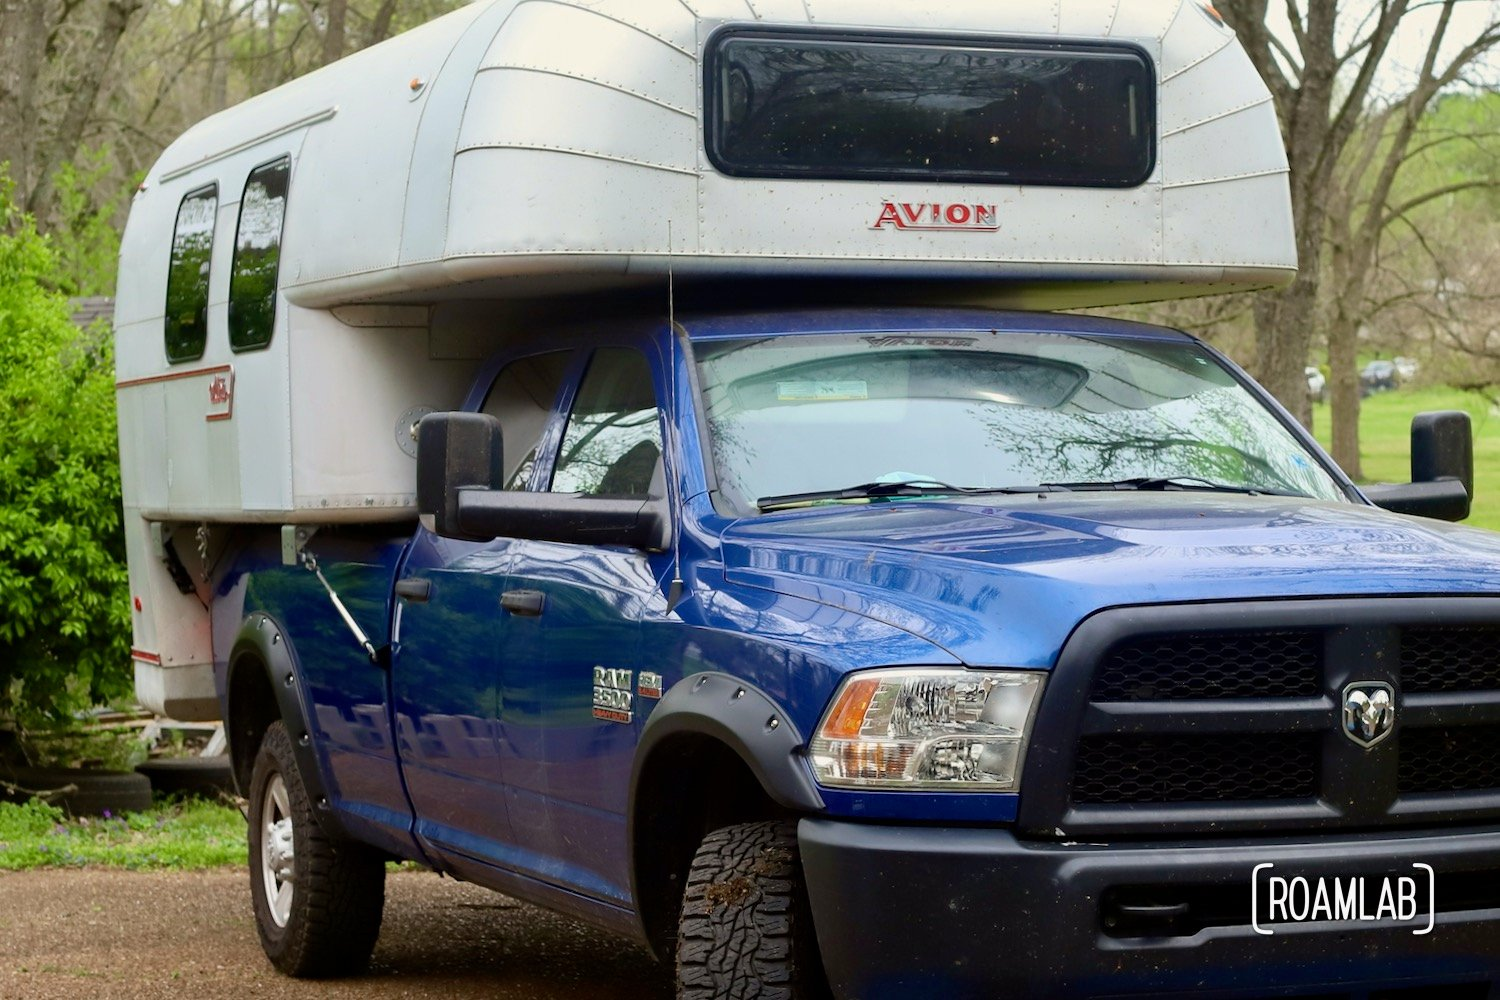 We upgrade our truck camper security with this DIY install of the HappiJac Frame Mount Camper Tiedown System in our 2015 Ram 3500 Tradesman truck.